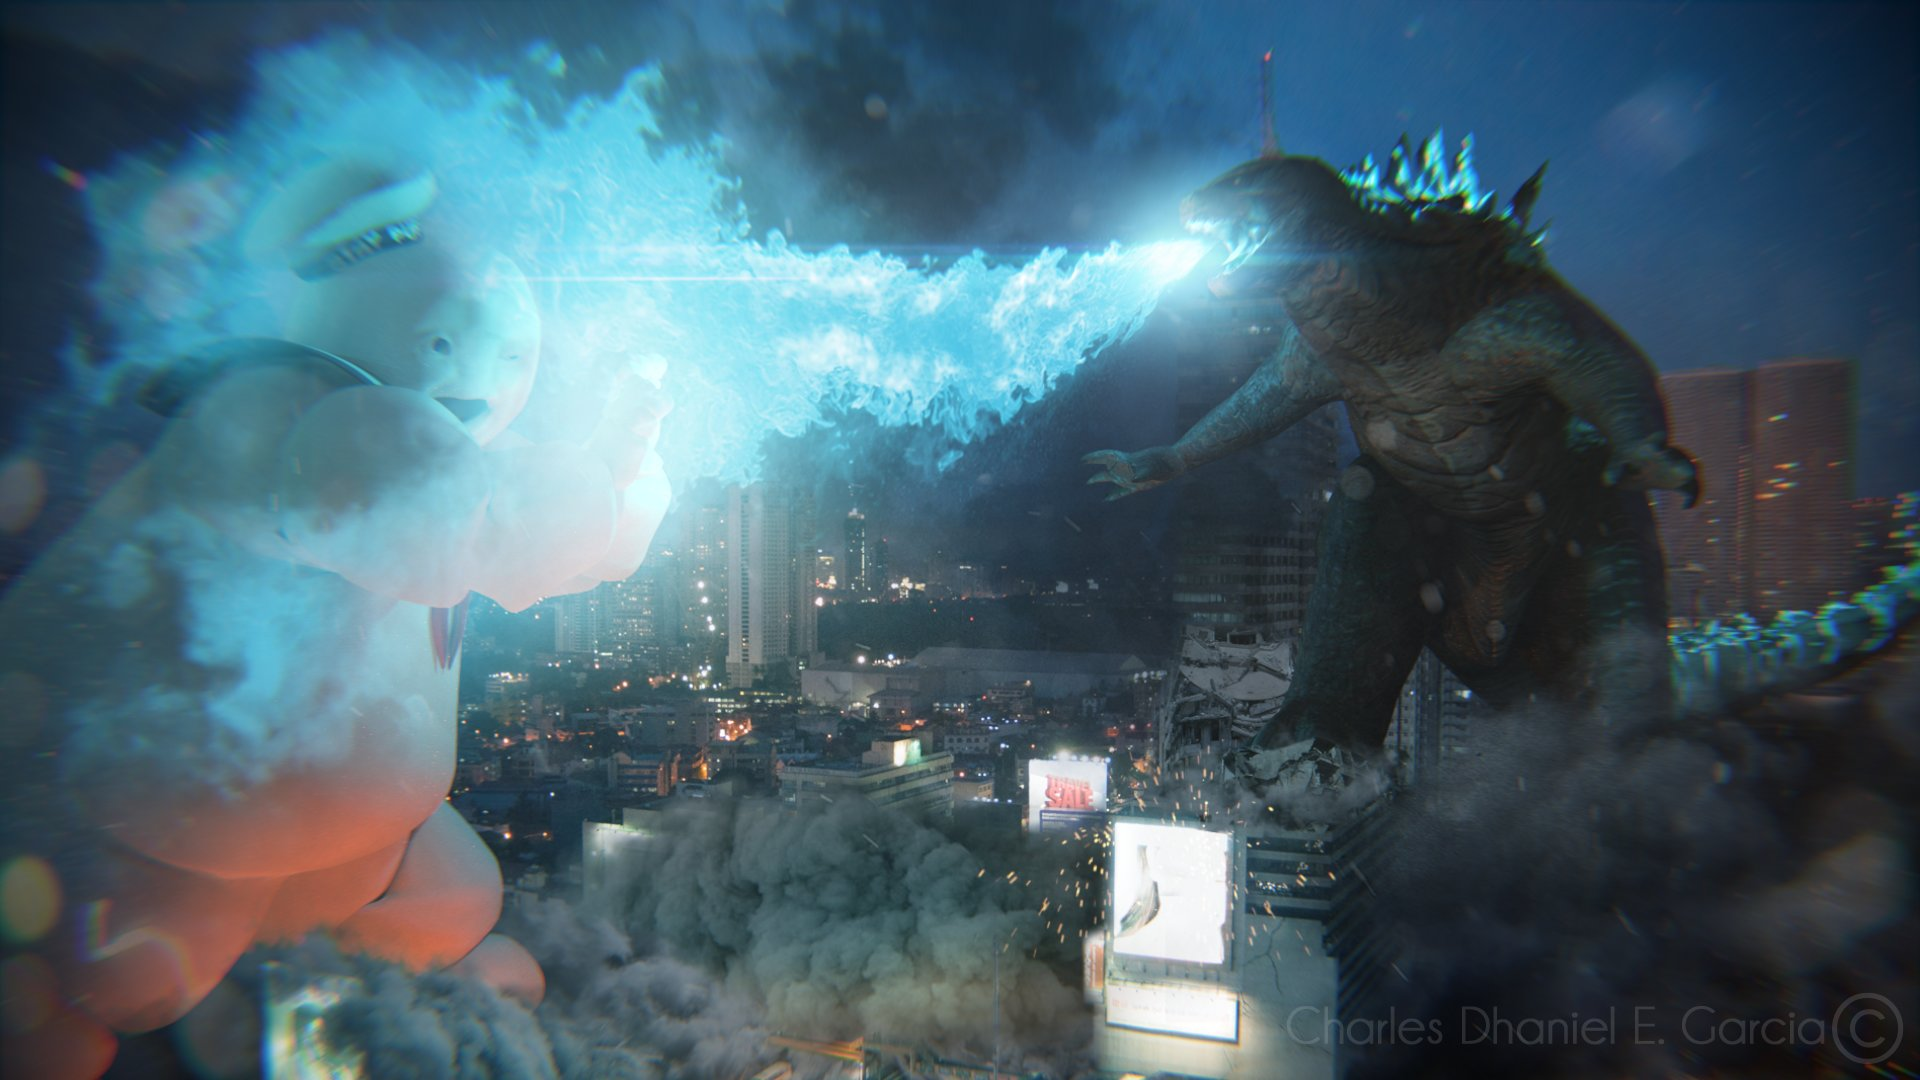 Godzilla Wallpaper Hd 1920x1080 Artstation Godzilla Vs Stay Puft Marshmallow Man